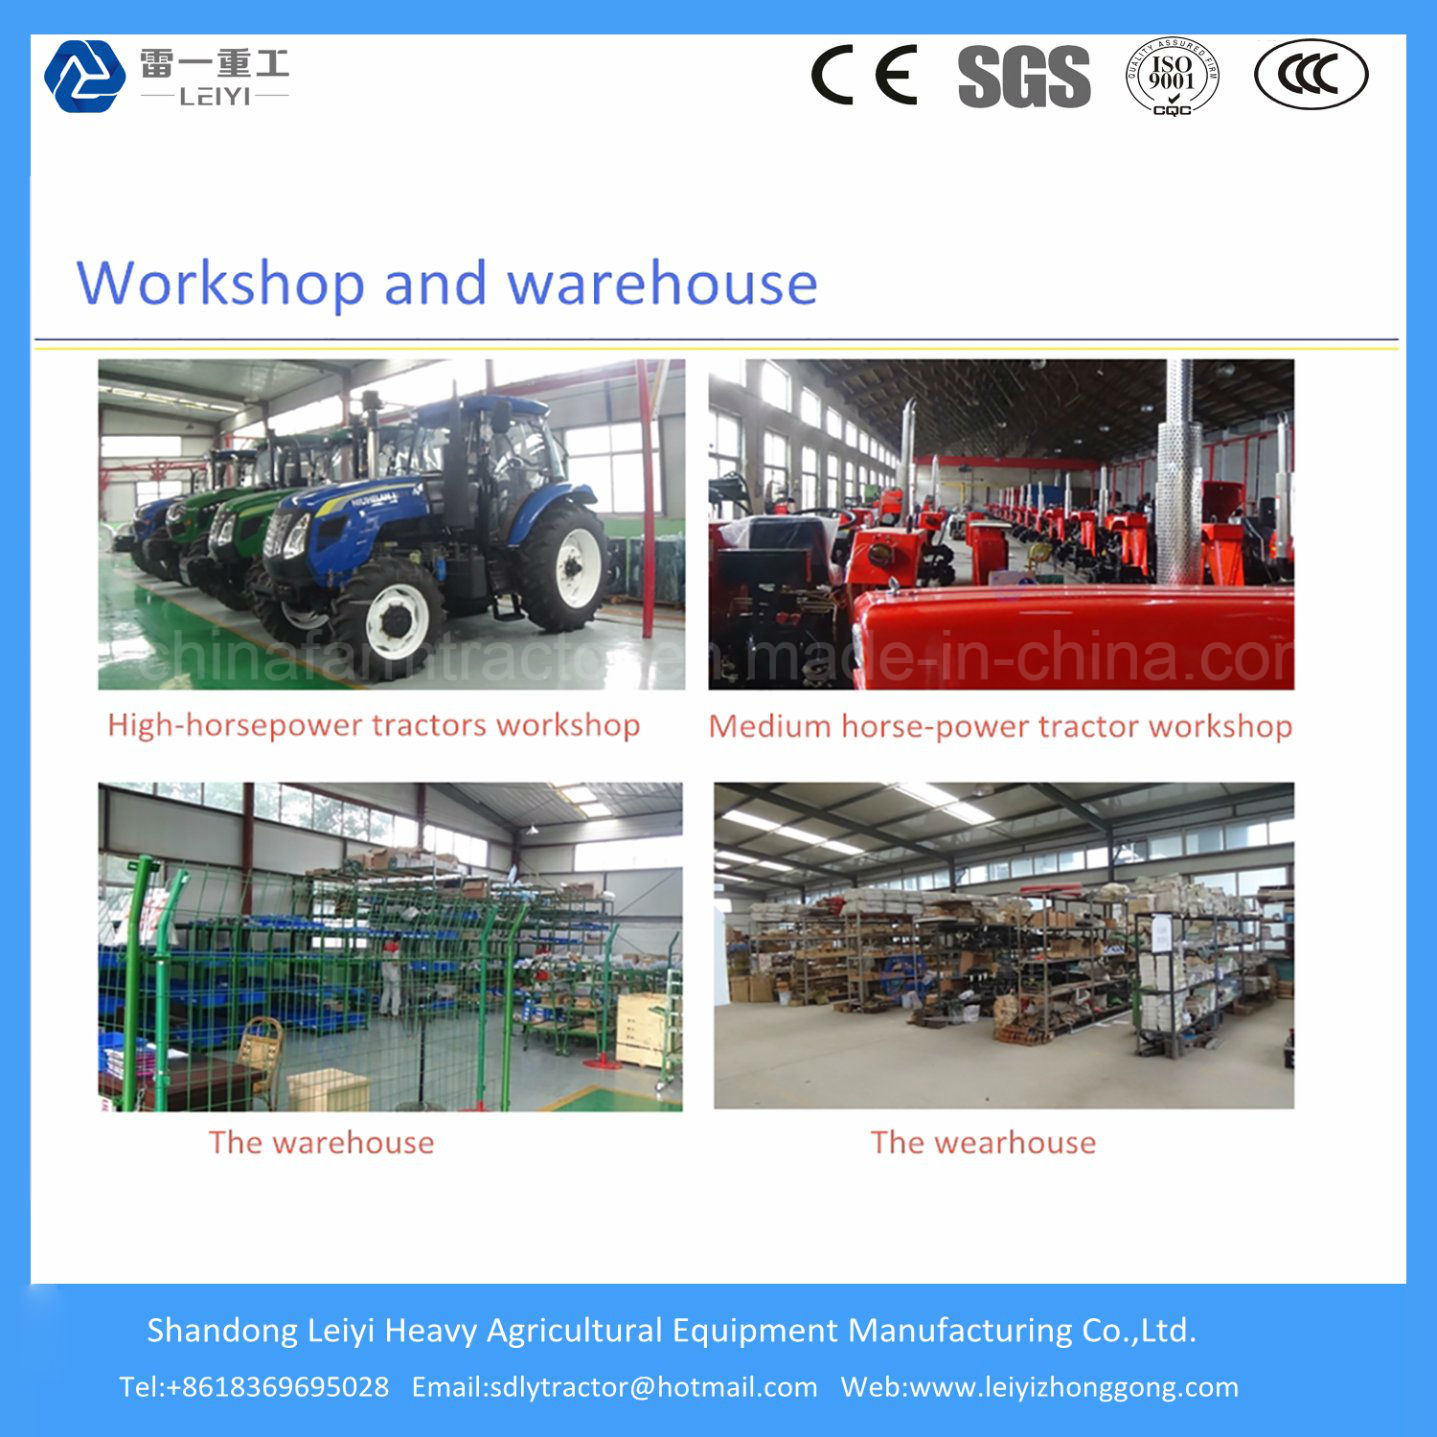 Factory Supply 4WD Farm/Mini/Diesel/Small Garden/Agricultural Tractor (40HP/48HP/55HP/70HP/125HP/135P/140HP/155HP)